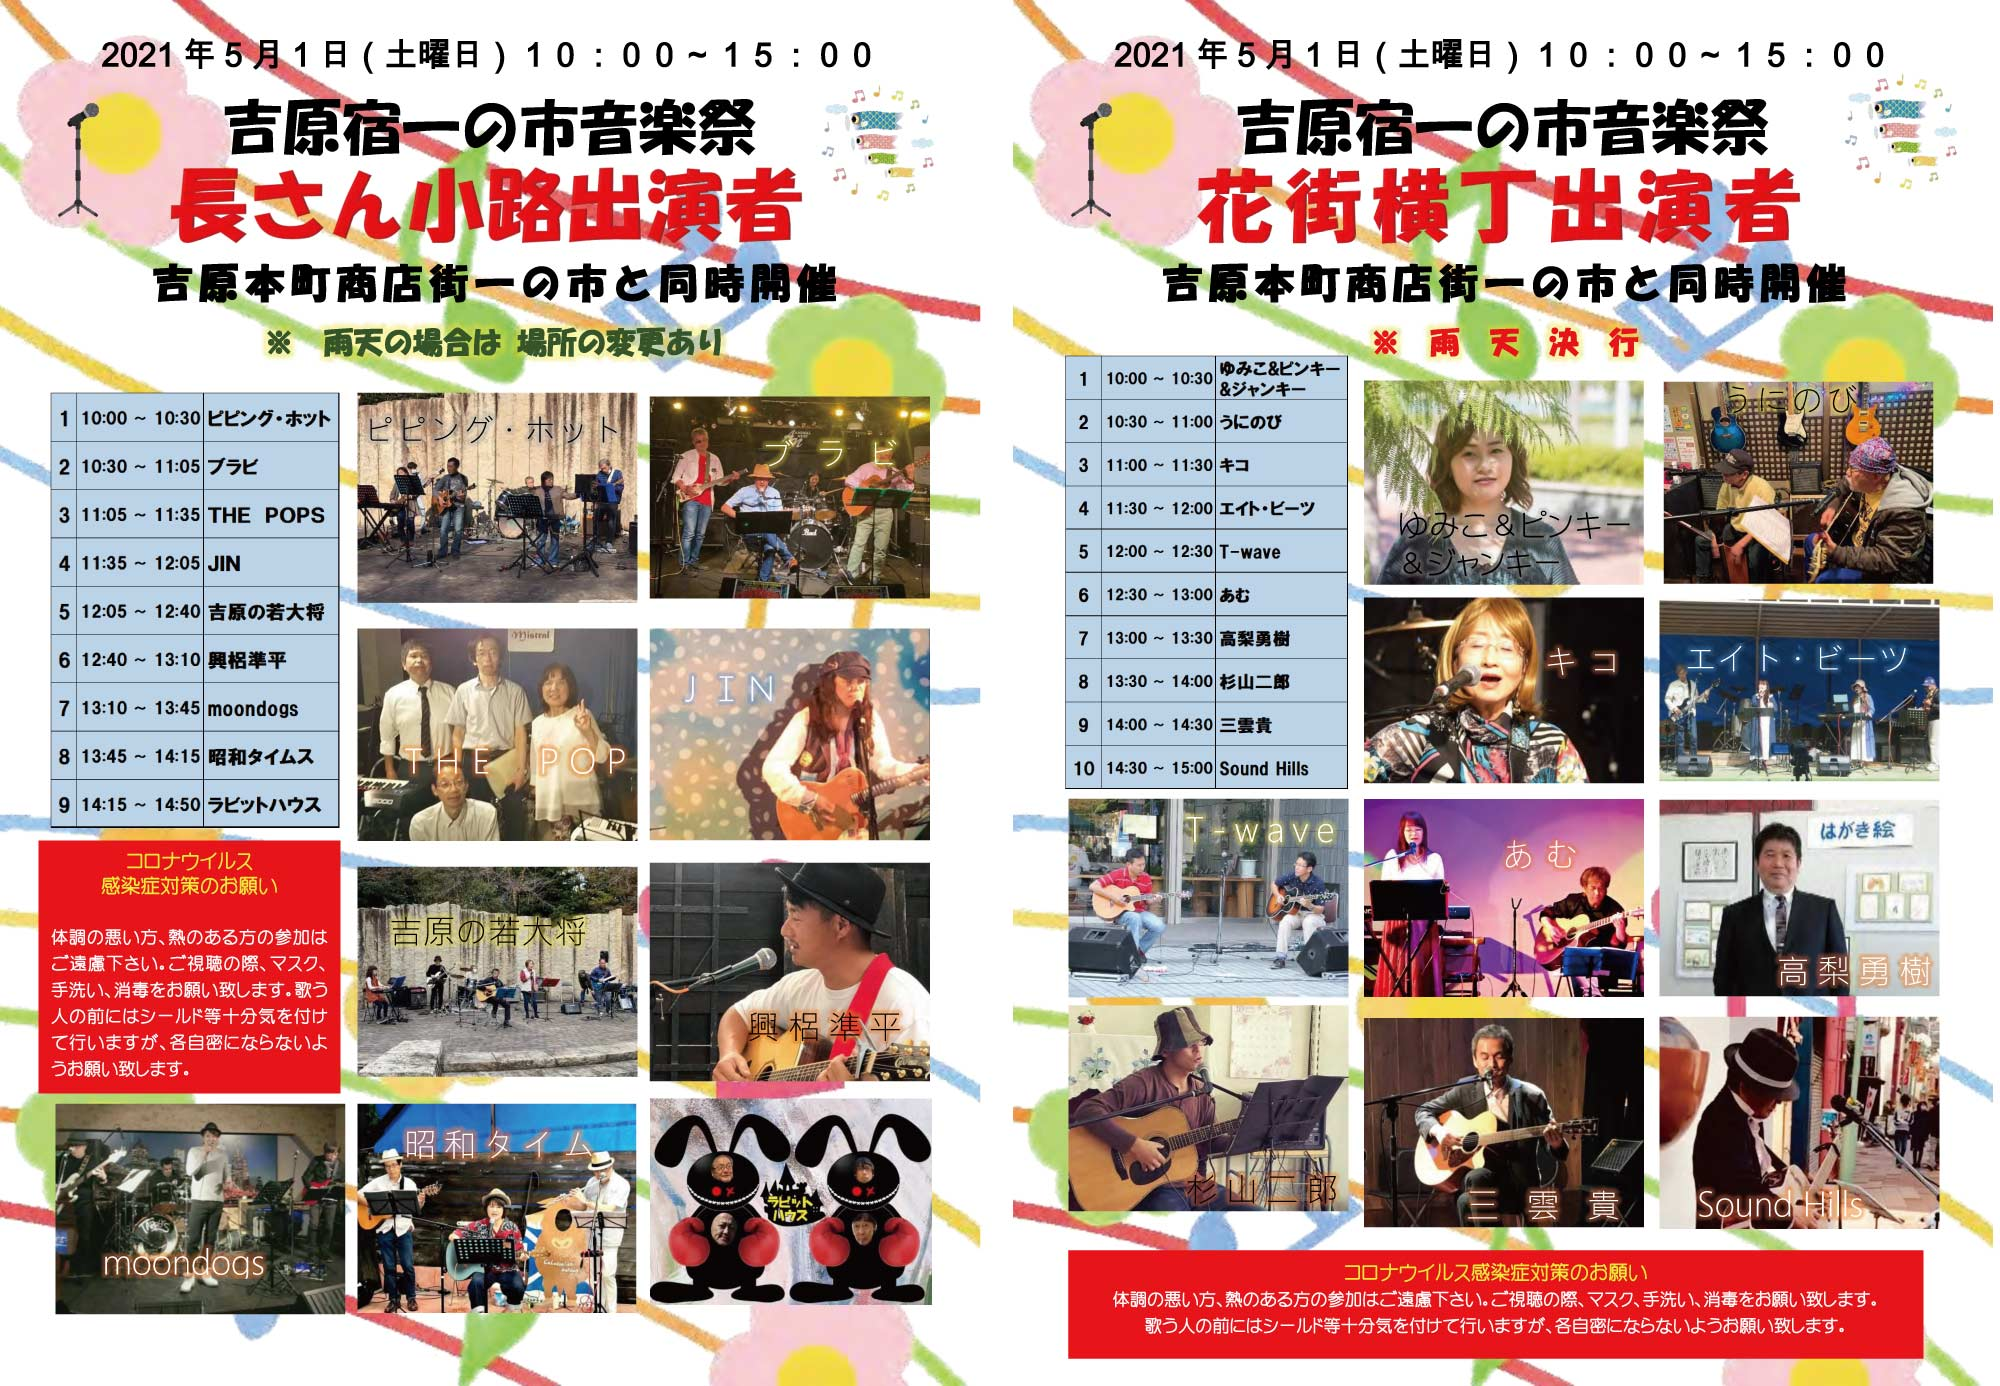 chosan2012music.jpg